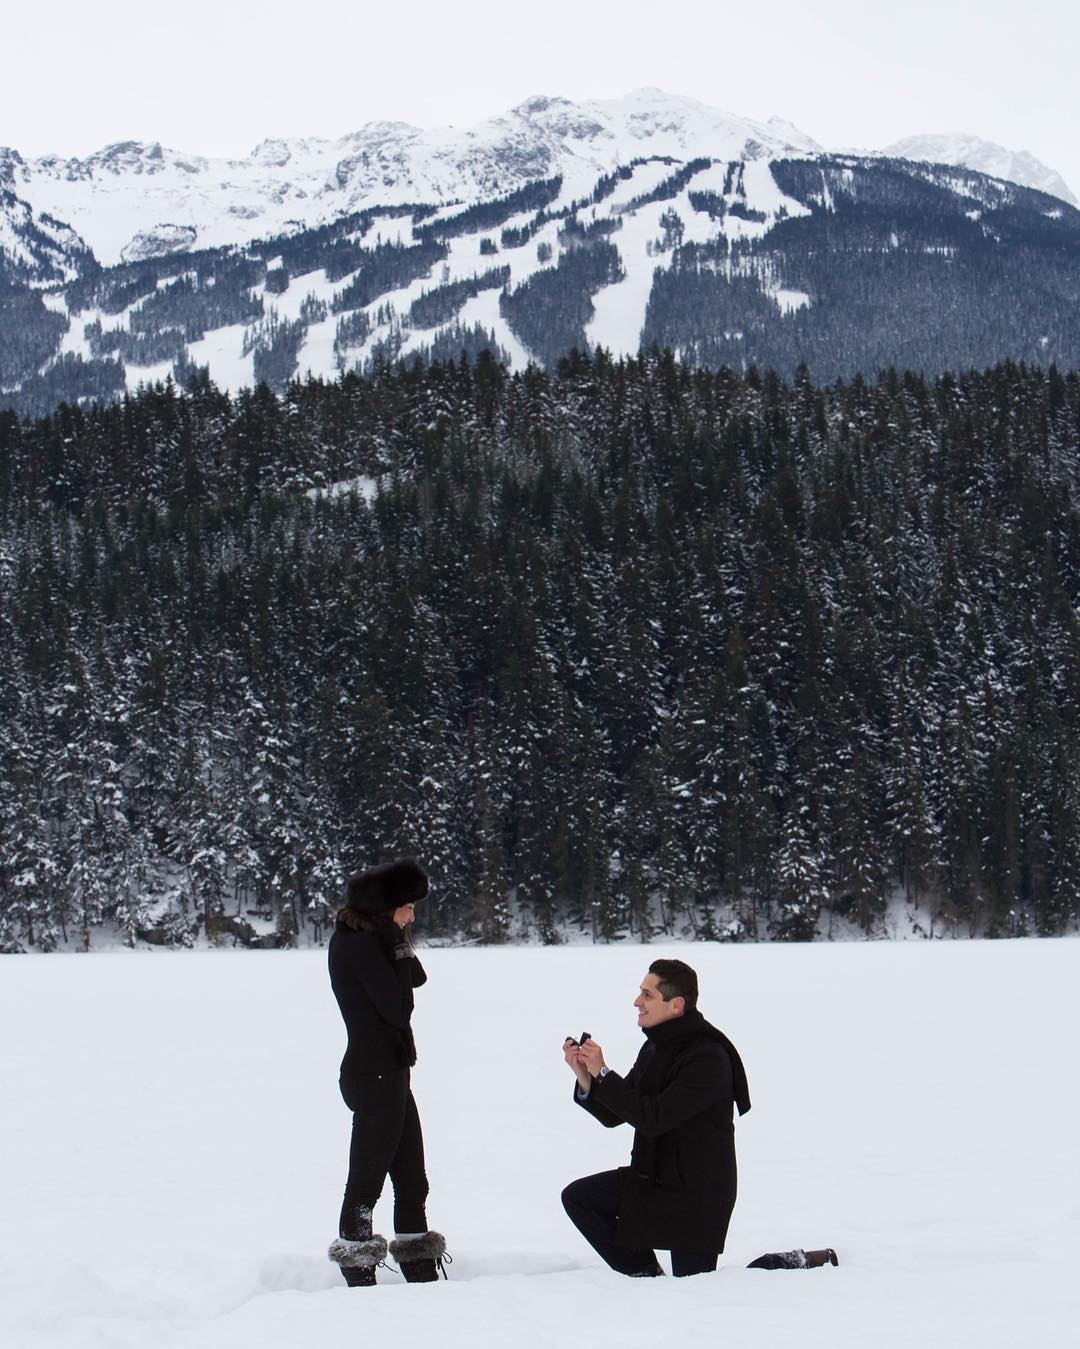 proposal-photoshoot-ideas-photo-editing-sample